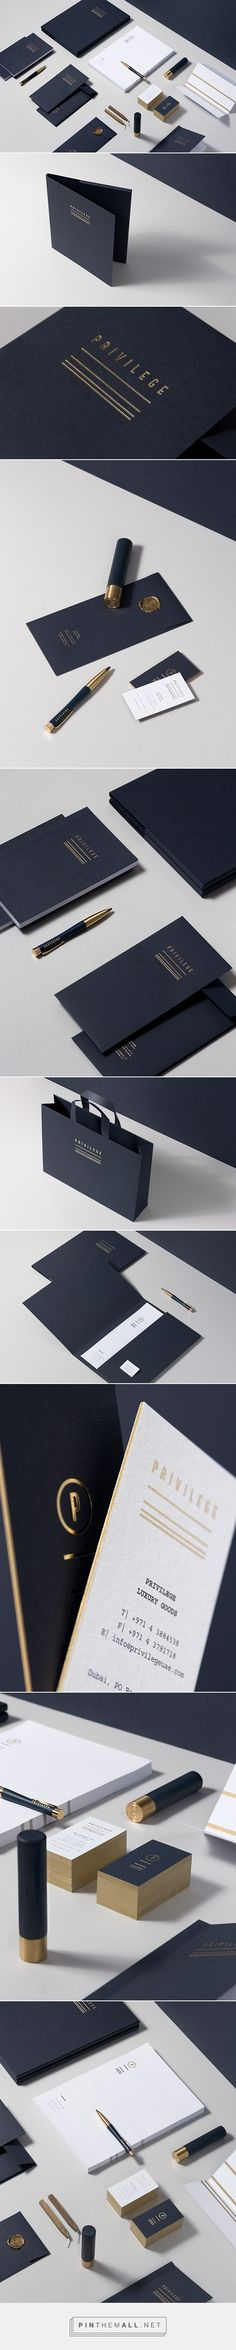 Privilege on Behance. - a grouped images picture - Pin Them All Corporate Identity Design, Brand Identity Design, Visual Identity, Stationary Branding, Hotel Branding, Business Branding, Business Card Design, Stationery, Graphisches Design